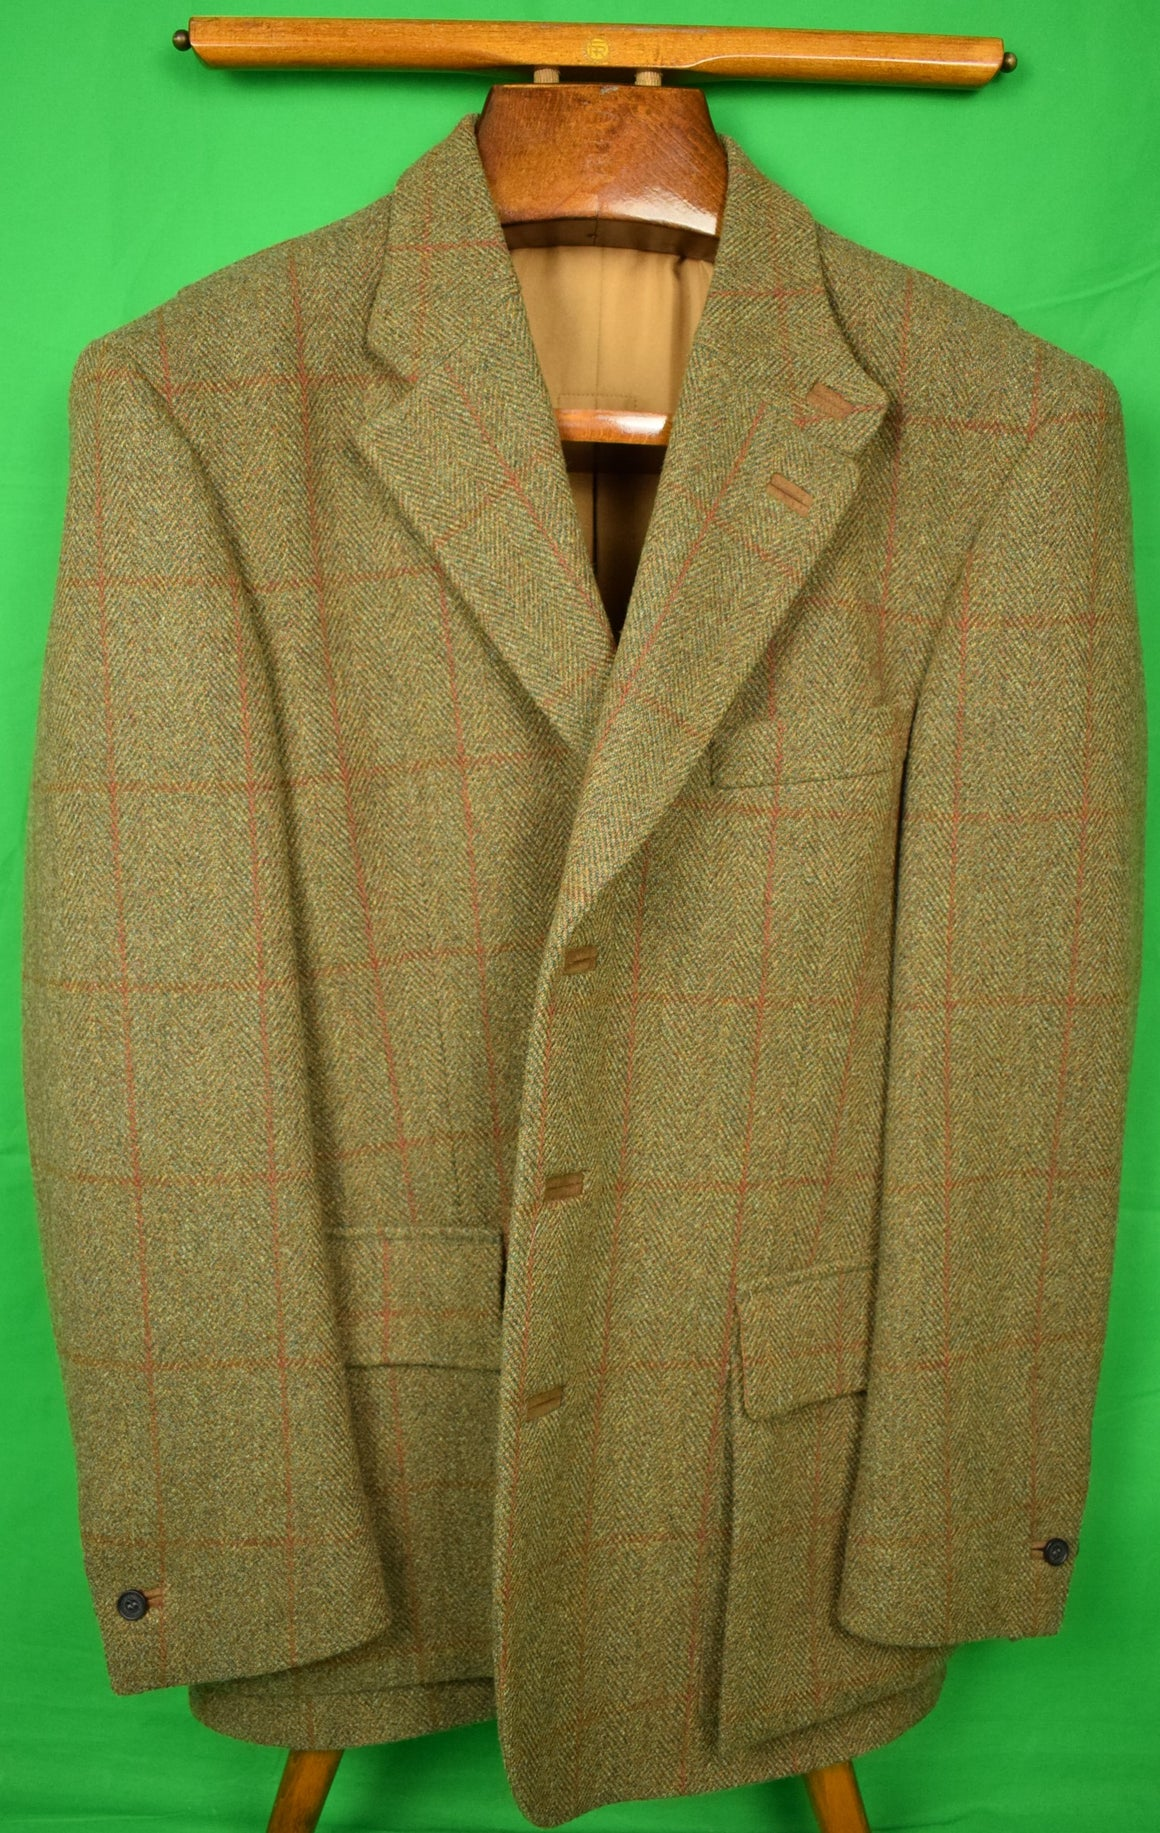 Holland & Holland Windowpane/ Herringbone Tweed Shooting Jacket Sz: 42R New w/ Tags!